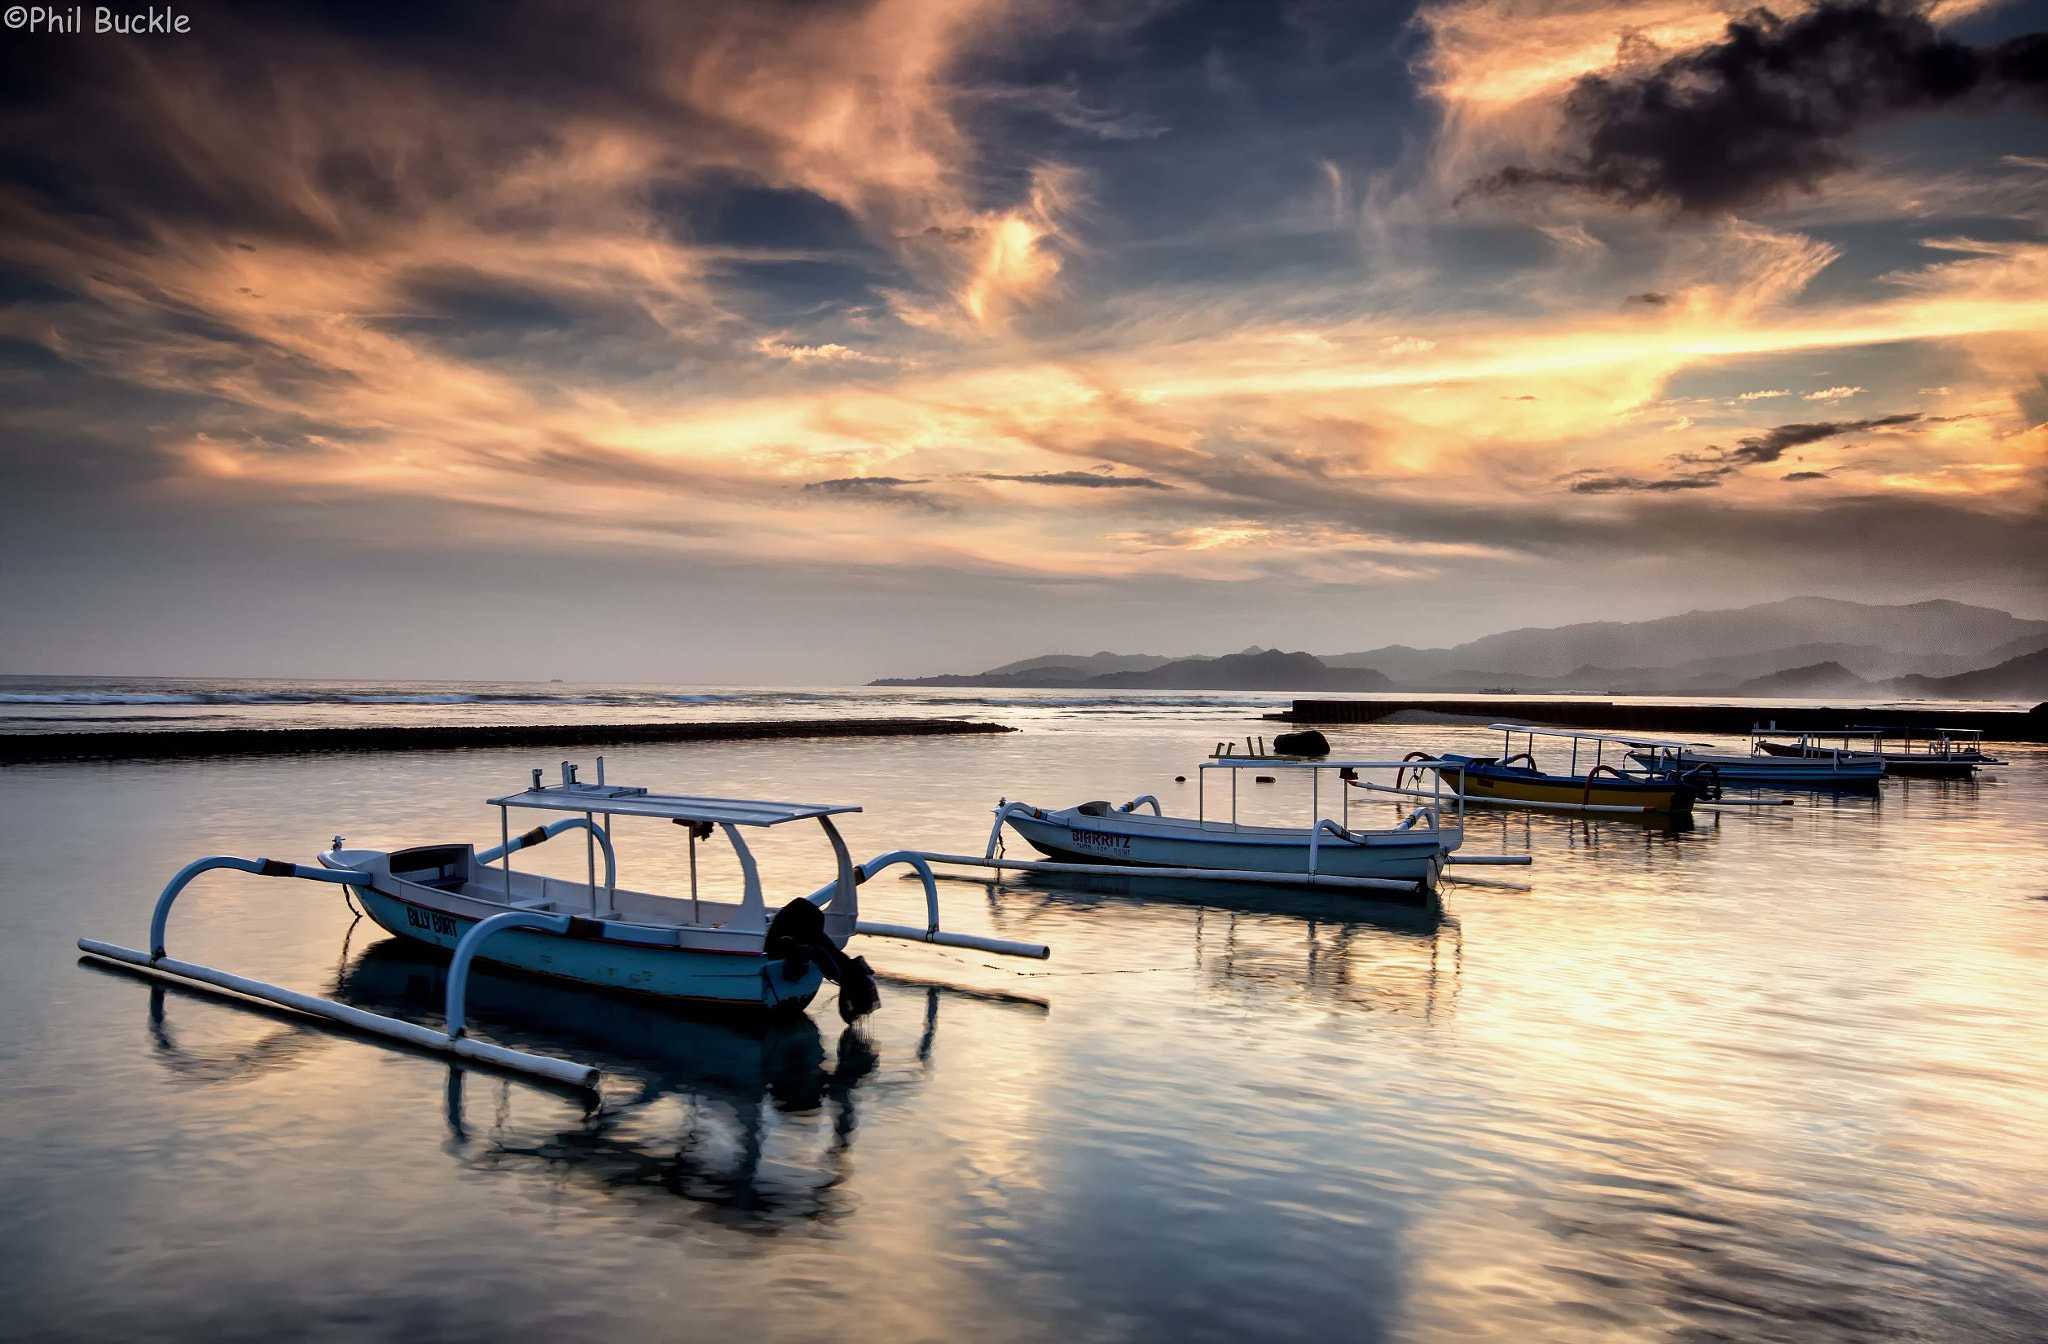 Photograph Bali Boats by Phil Buckle on 500px